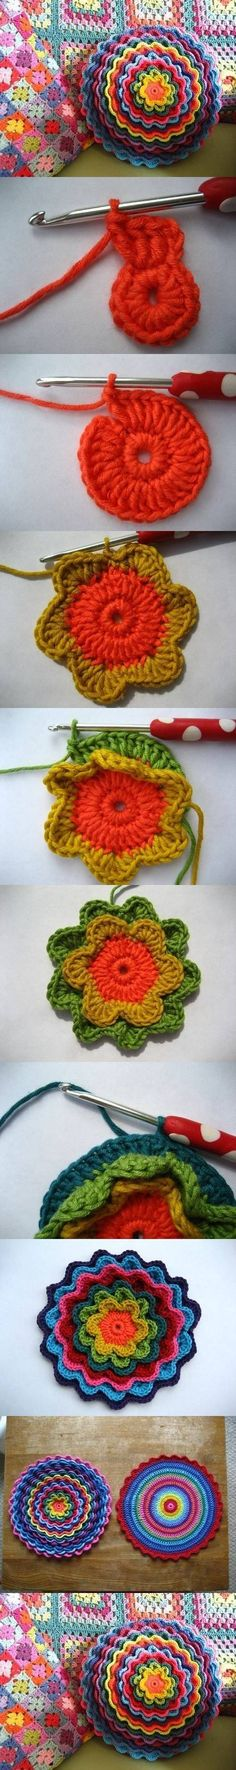 How to make pretty Crochet Flower DIY tutorial instructions / How To Instructions